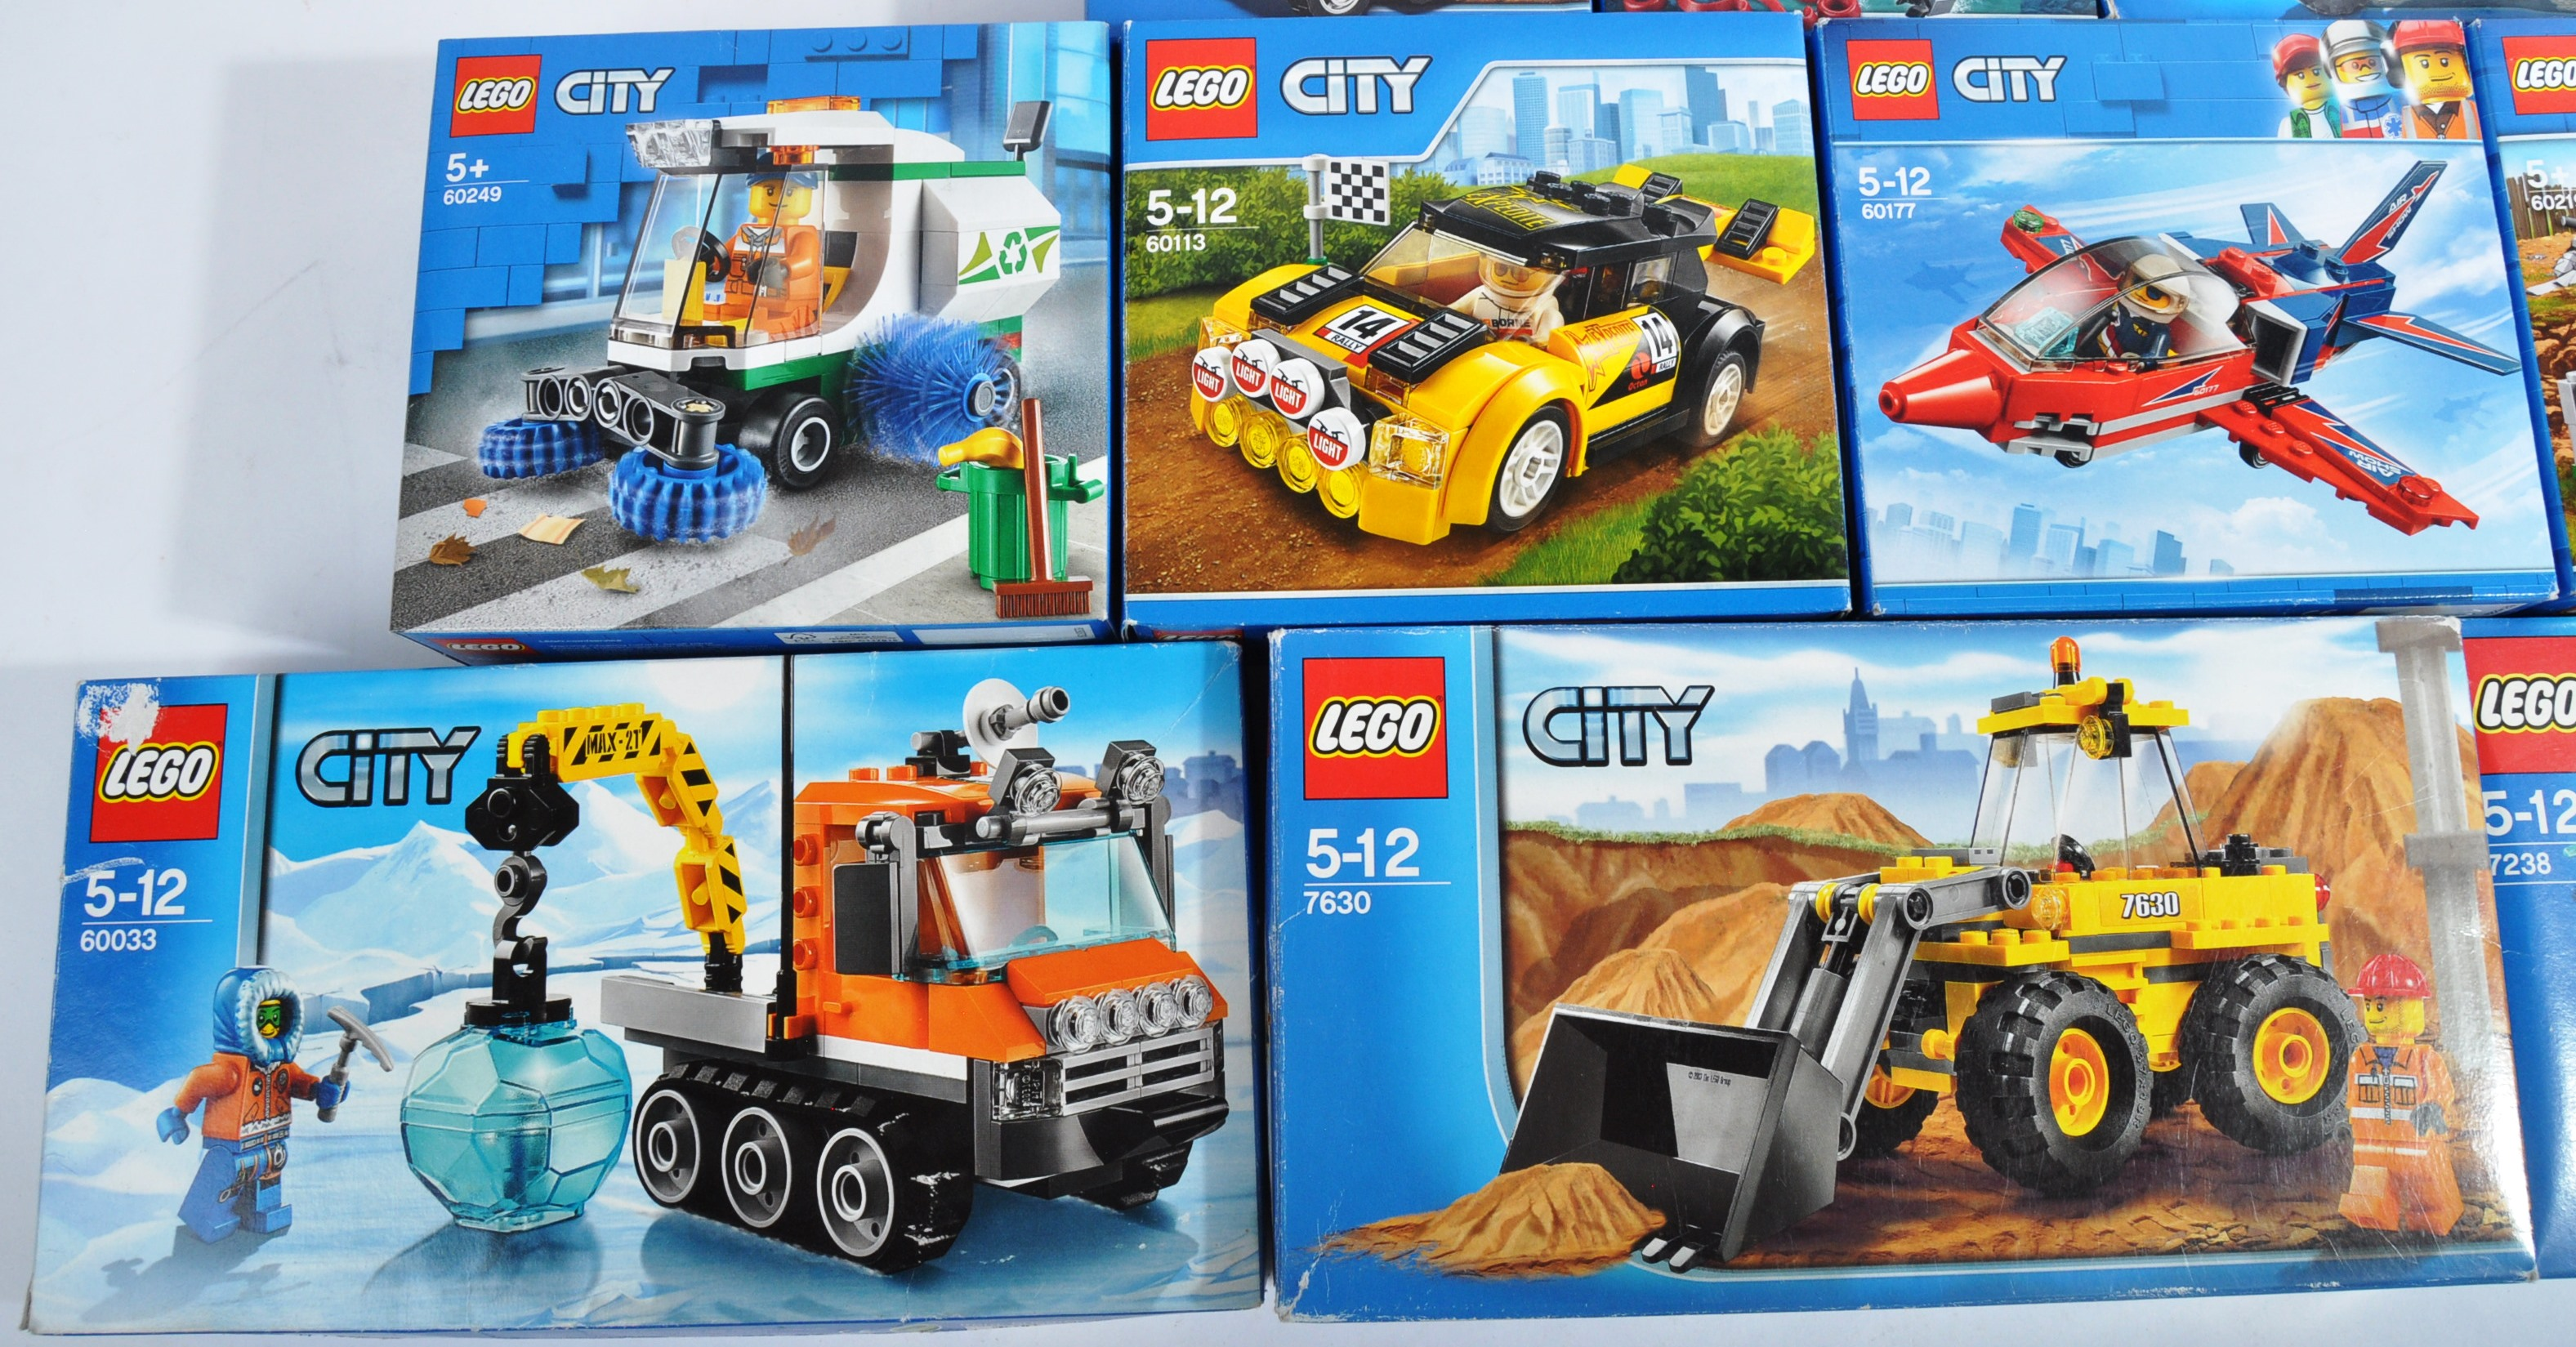 LEGO SETS - LEGO CITY - A COLLECTION OF X10 LEGO CITY SETS - Image 3 of 4